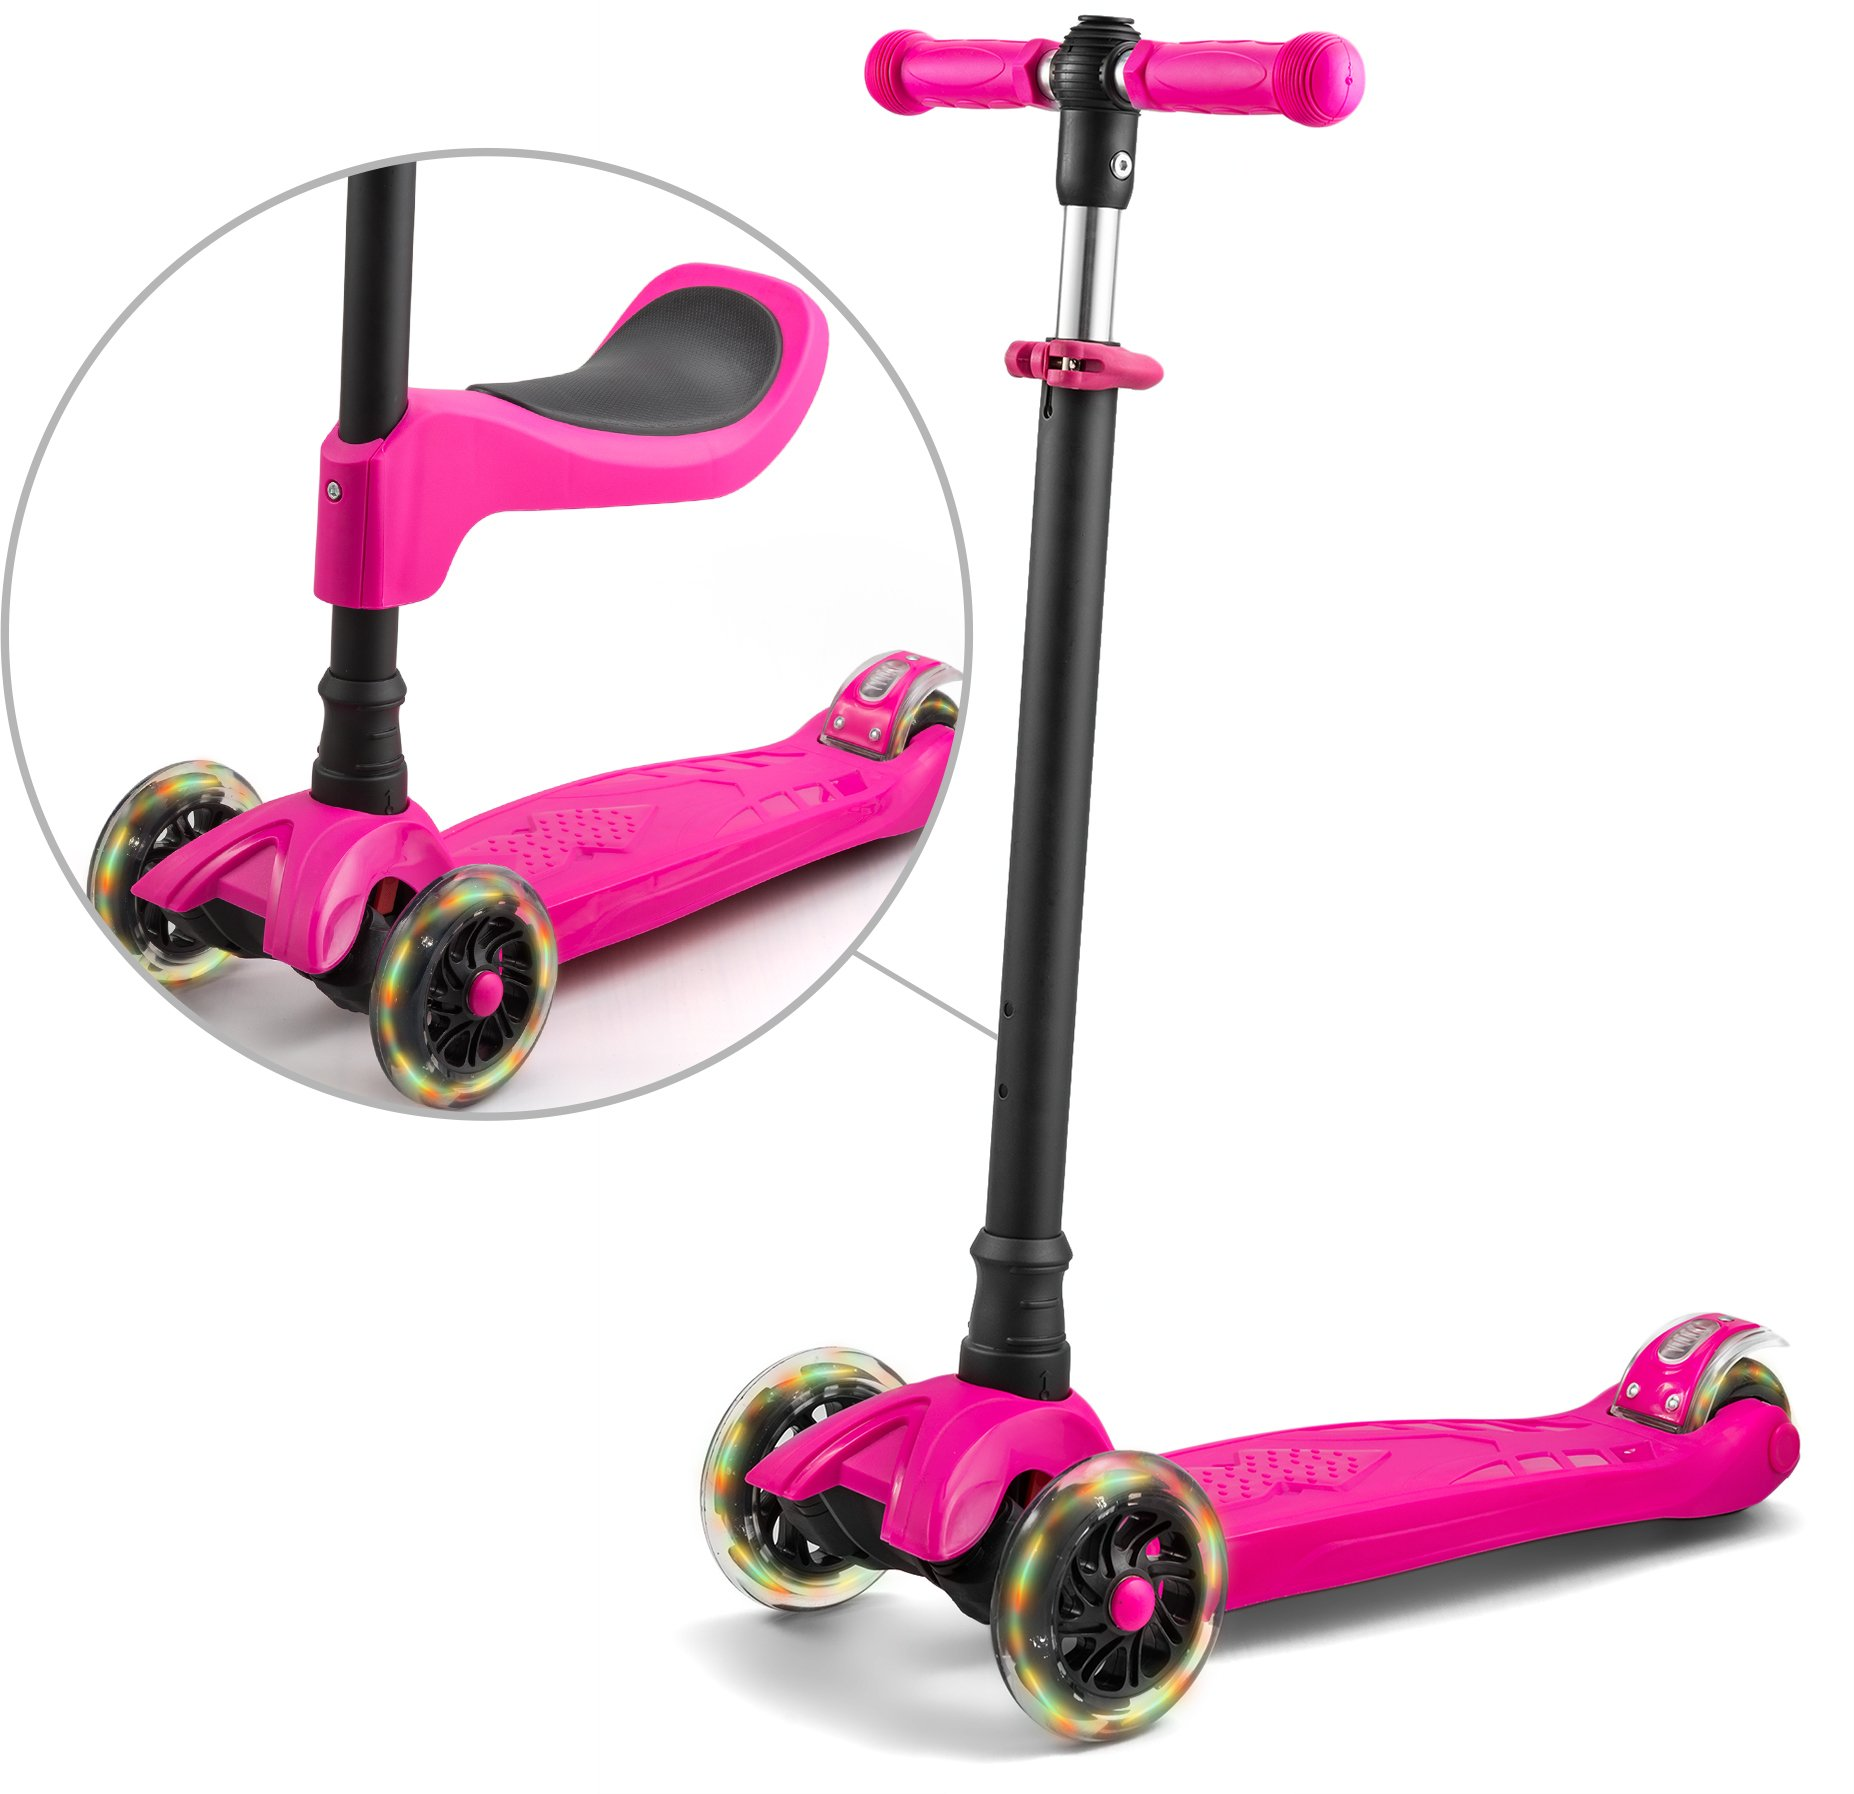 LaScoota 2-in-1 Kick Scooter with Removable Seat great for kids & toddlers Girls or boys – Adjustable Height w/Extra-wide Deck PU Flashing Wheels for Children from 2 to 14 Year-Old (Pink) by LaScoota (Image #2)